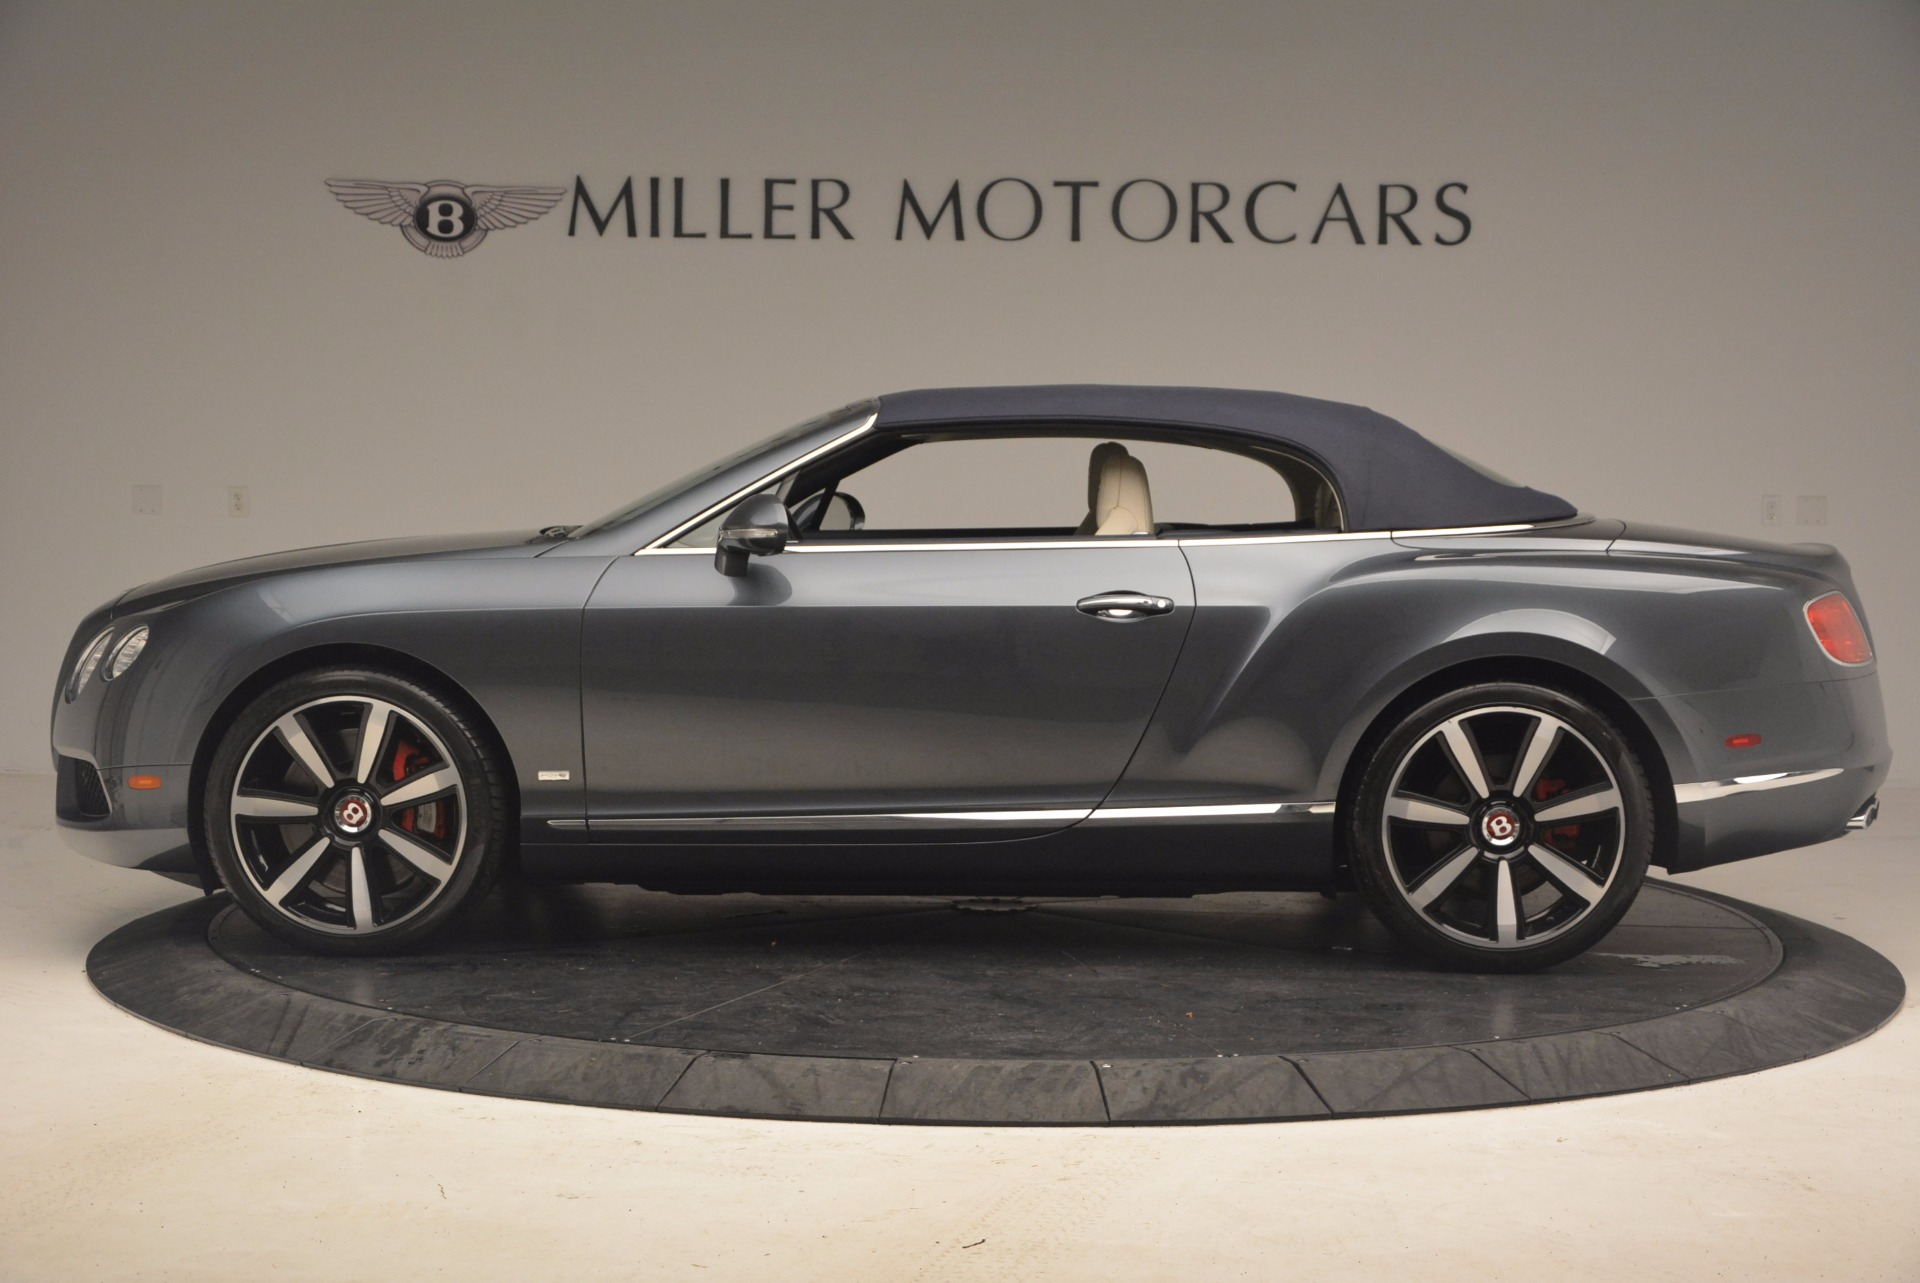 Used 2013 Bentley Continental GT V8 Le Mans Edition, 1 of 48 For Sale In Greenwich, CT 1288_p16